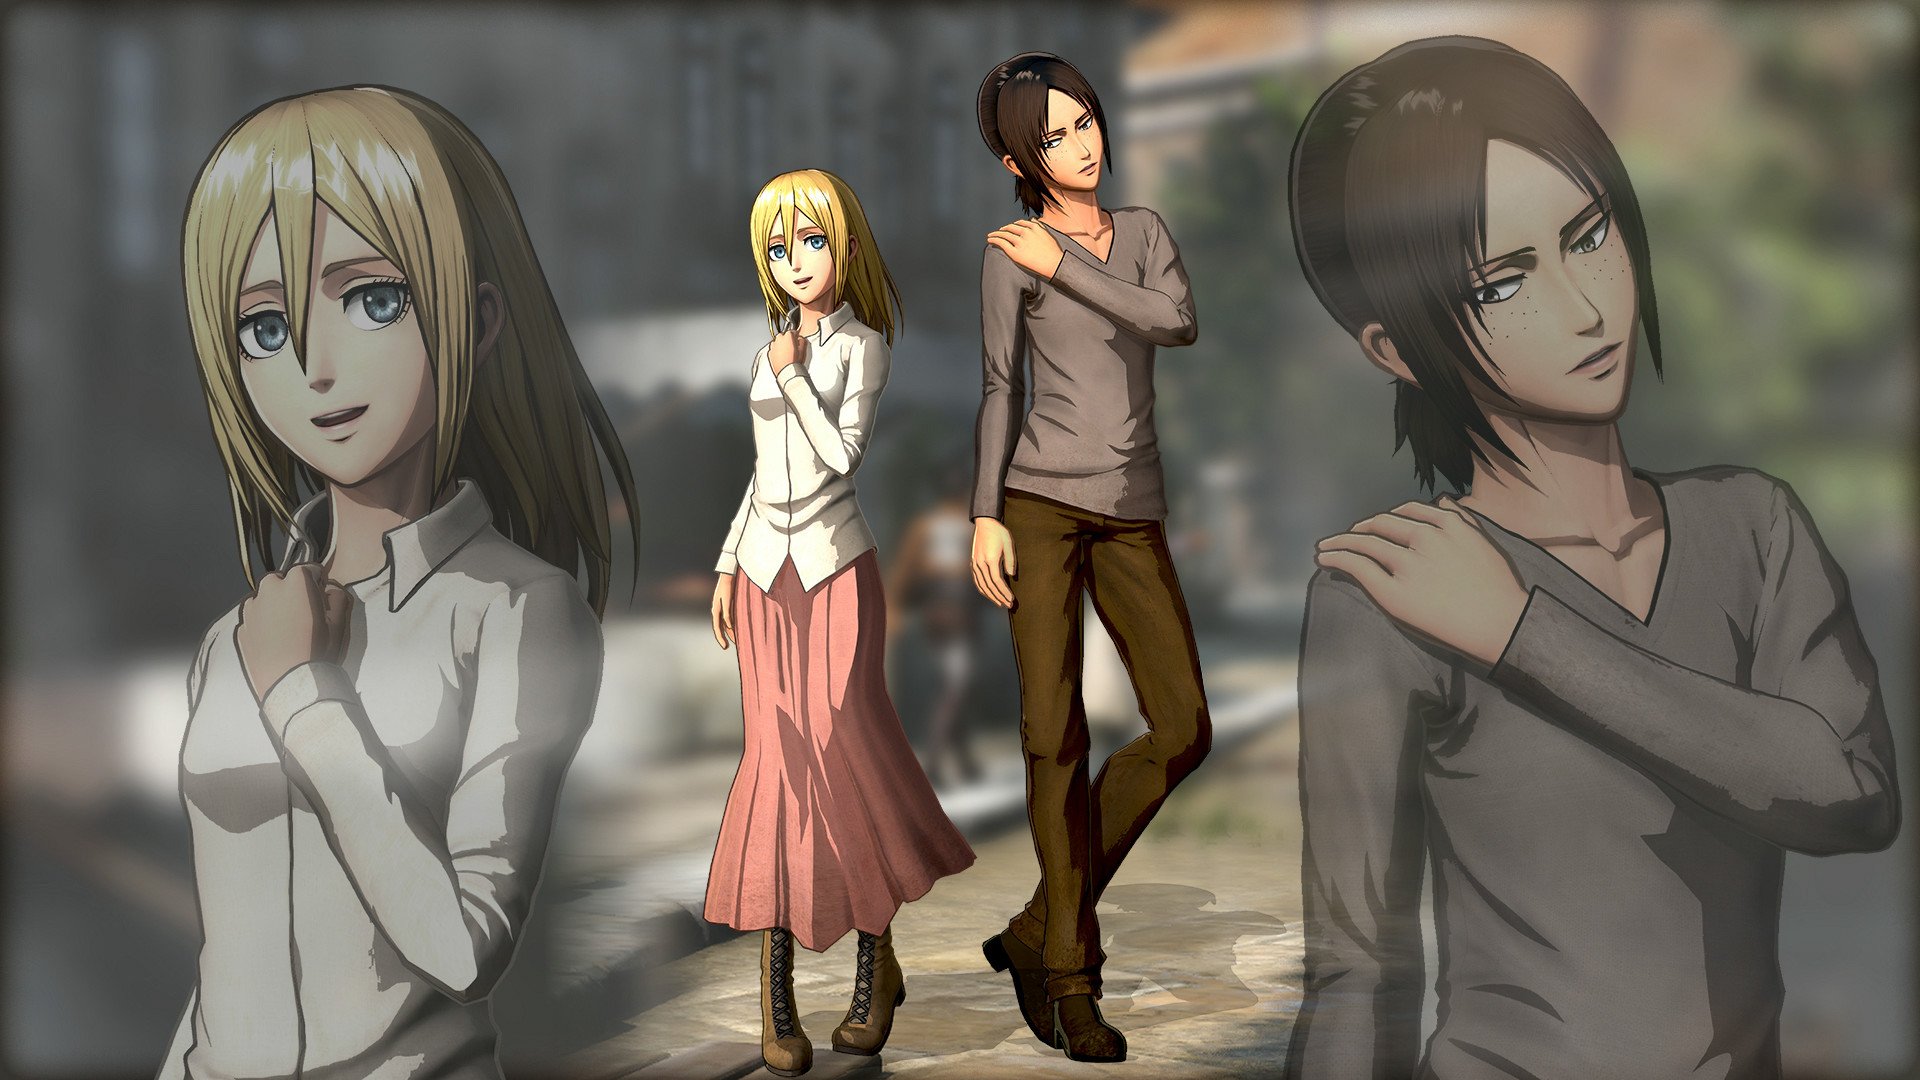 learn about the battle system in attack on titan 2 in a